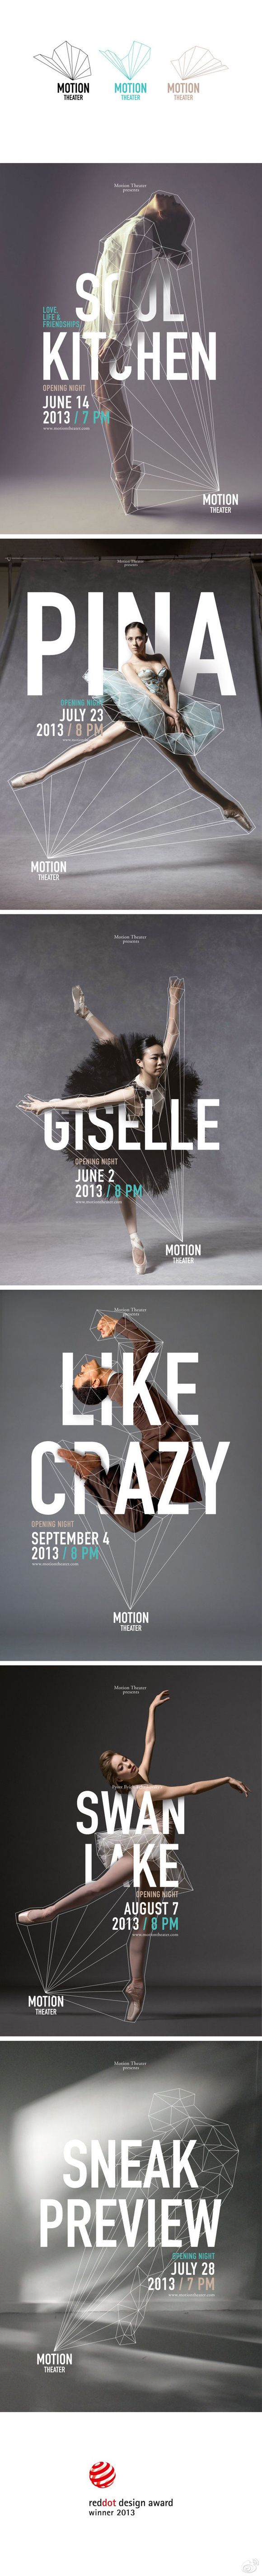 MOTION THEATER #design #poster #theater #dance #branding #season #style #draw #lines #photography #model #dancer